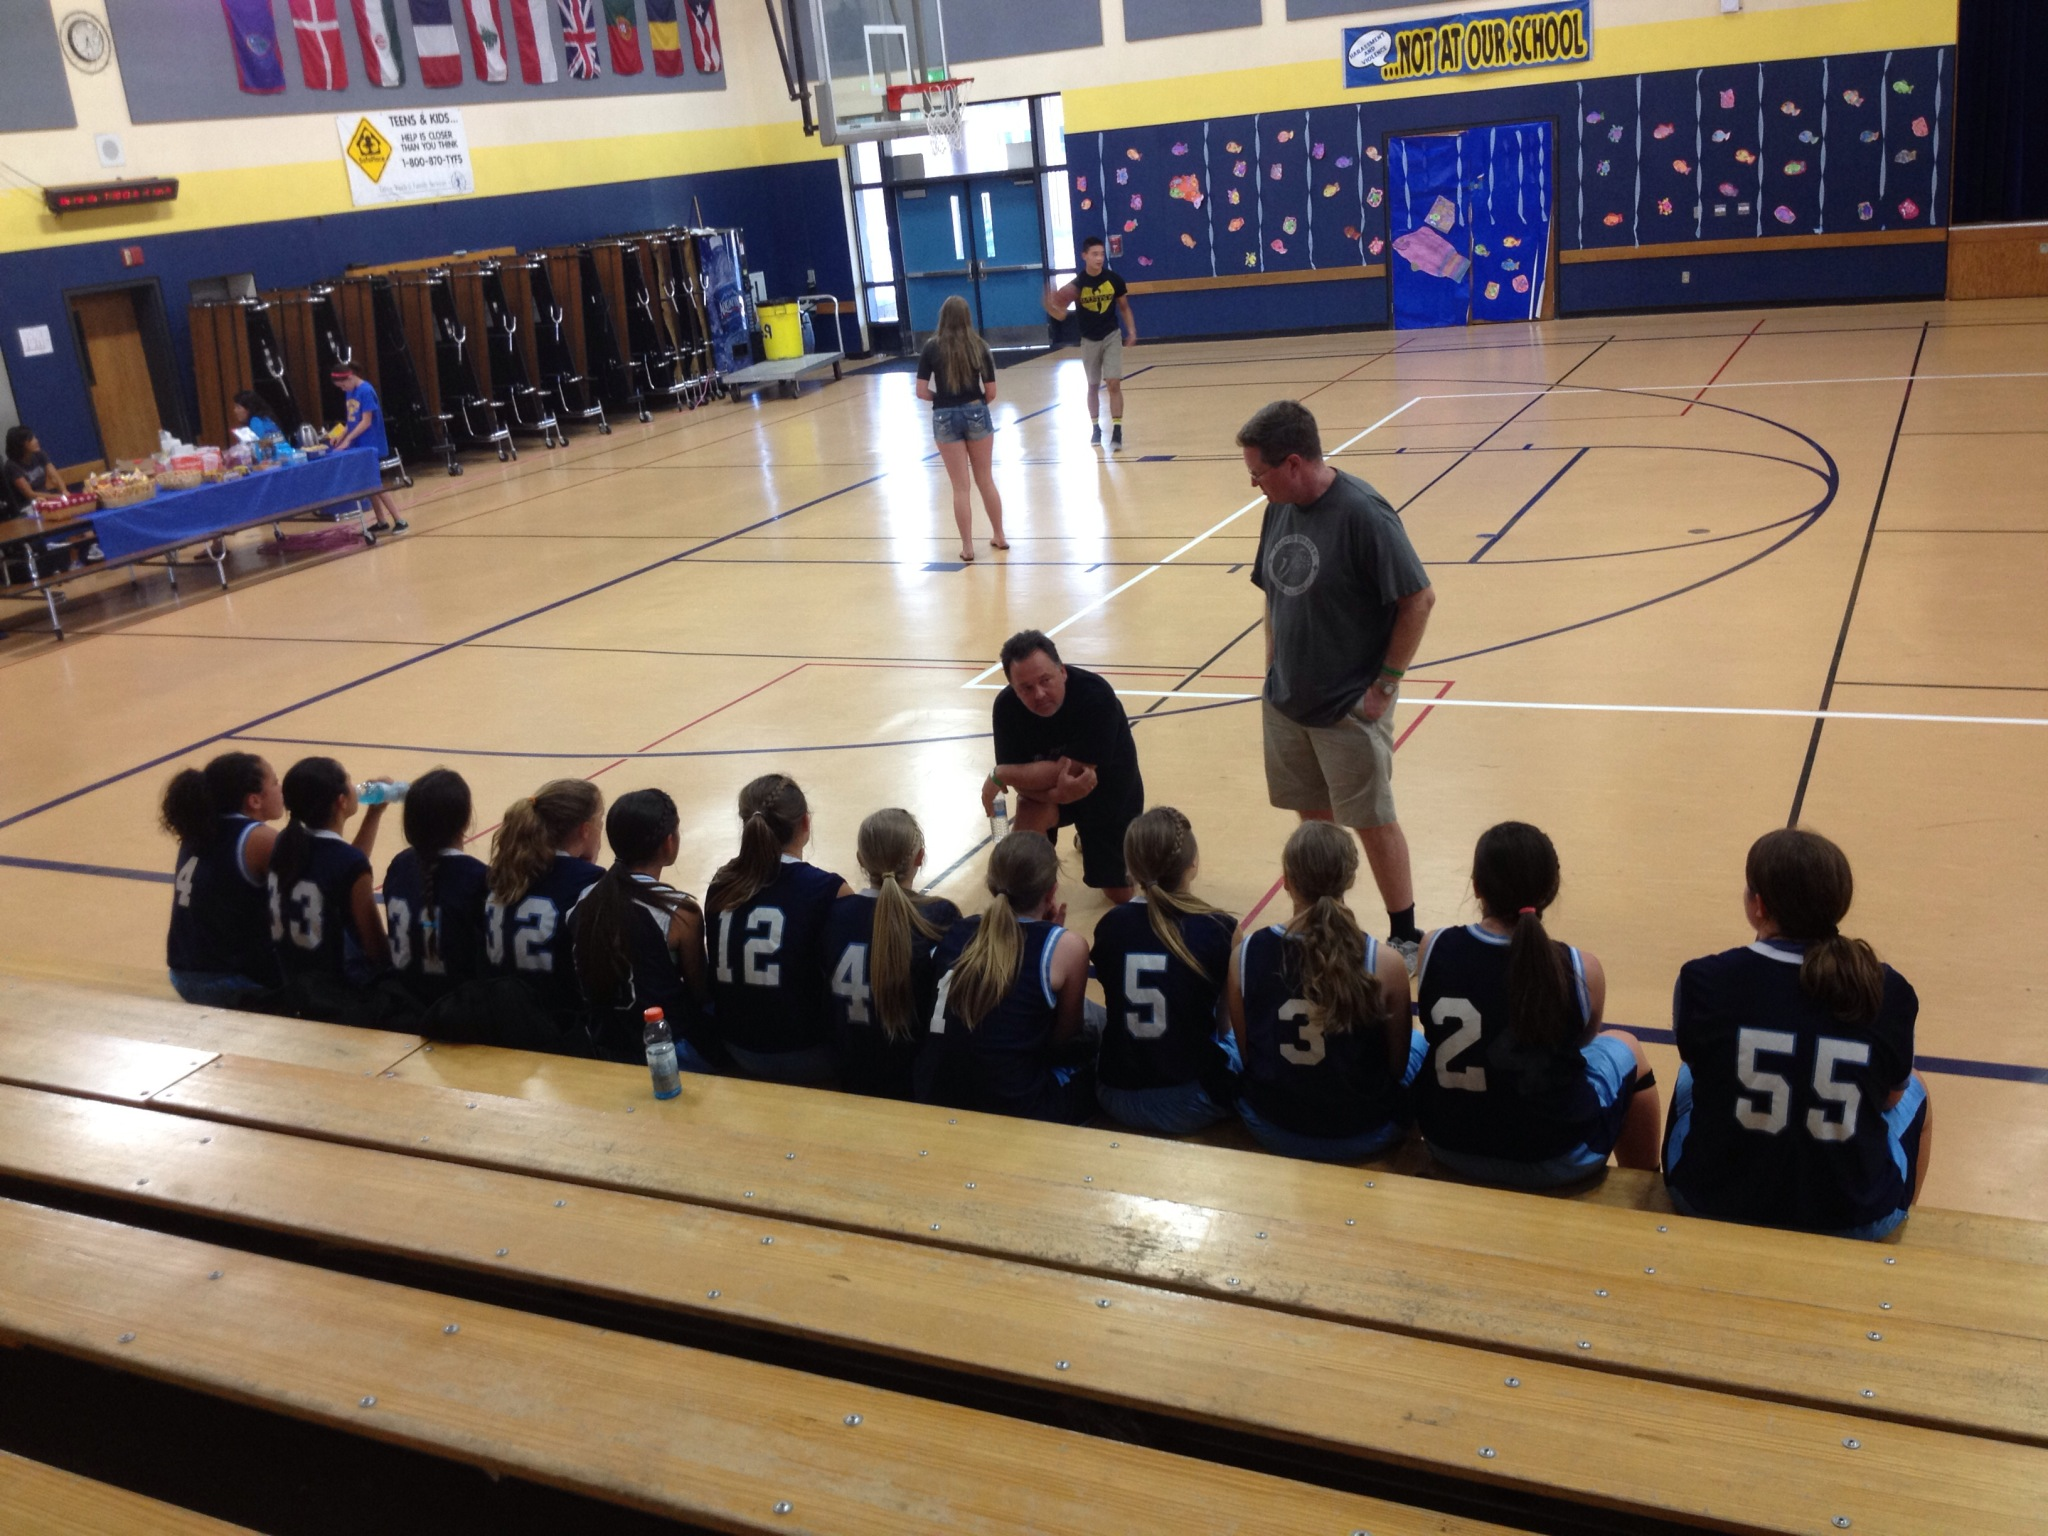 Yosemite Badgers Girls Basketball in Tahoe talk with coach - photo by Stacey Montalto 2014